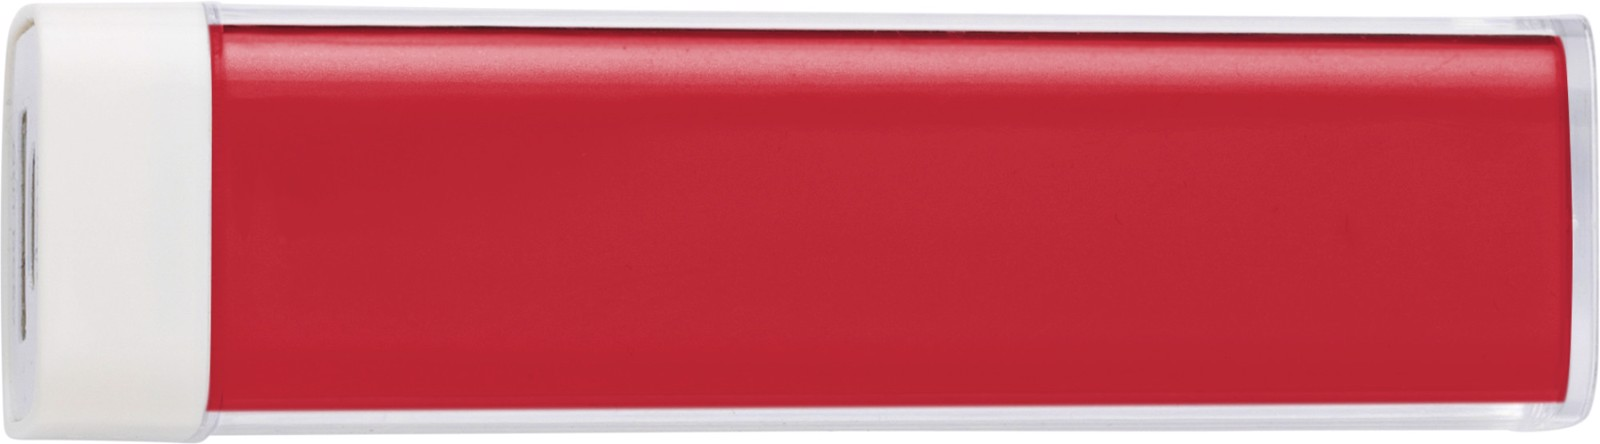 ABS power bank - Red